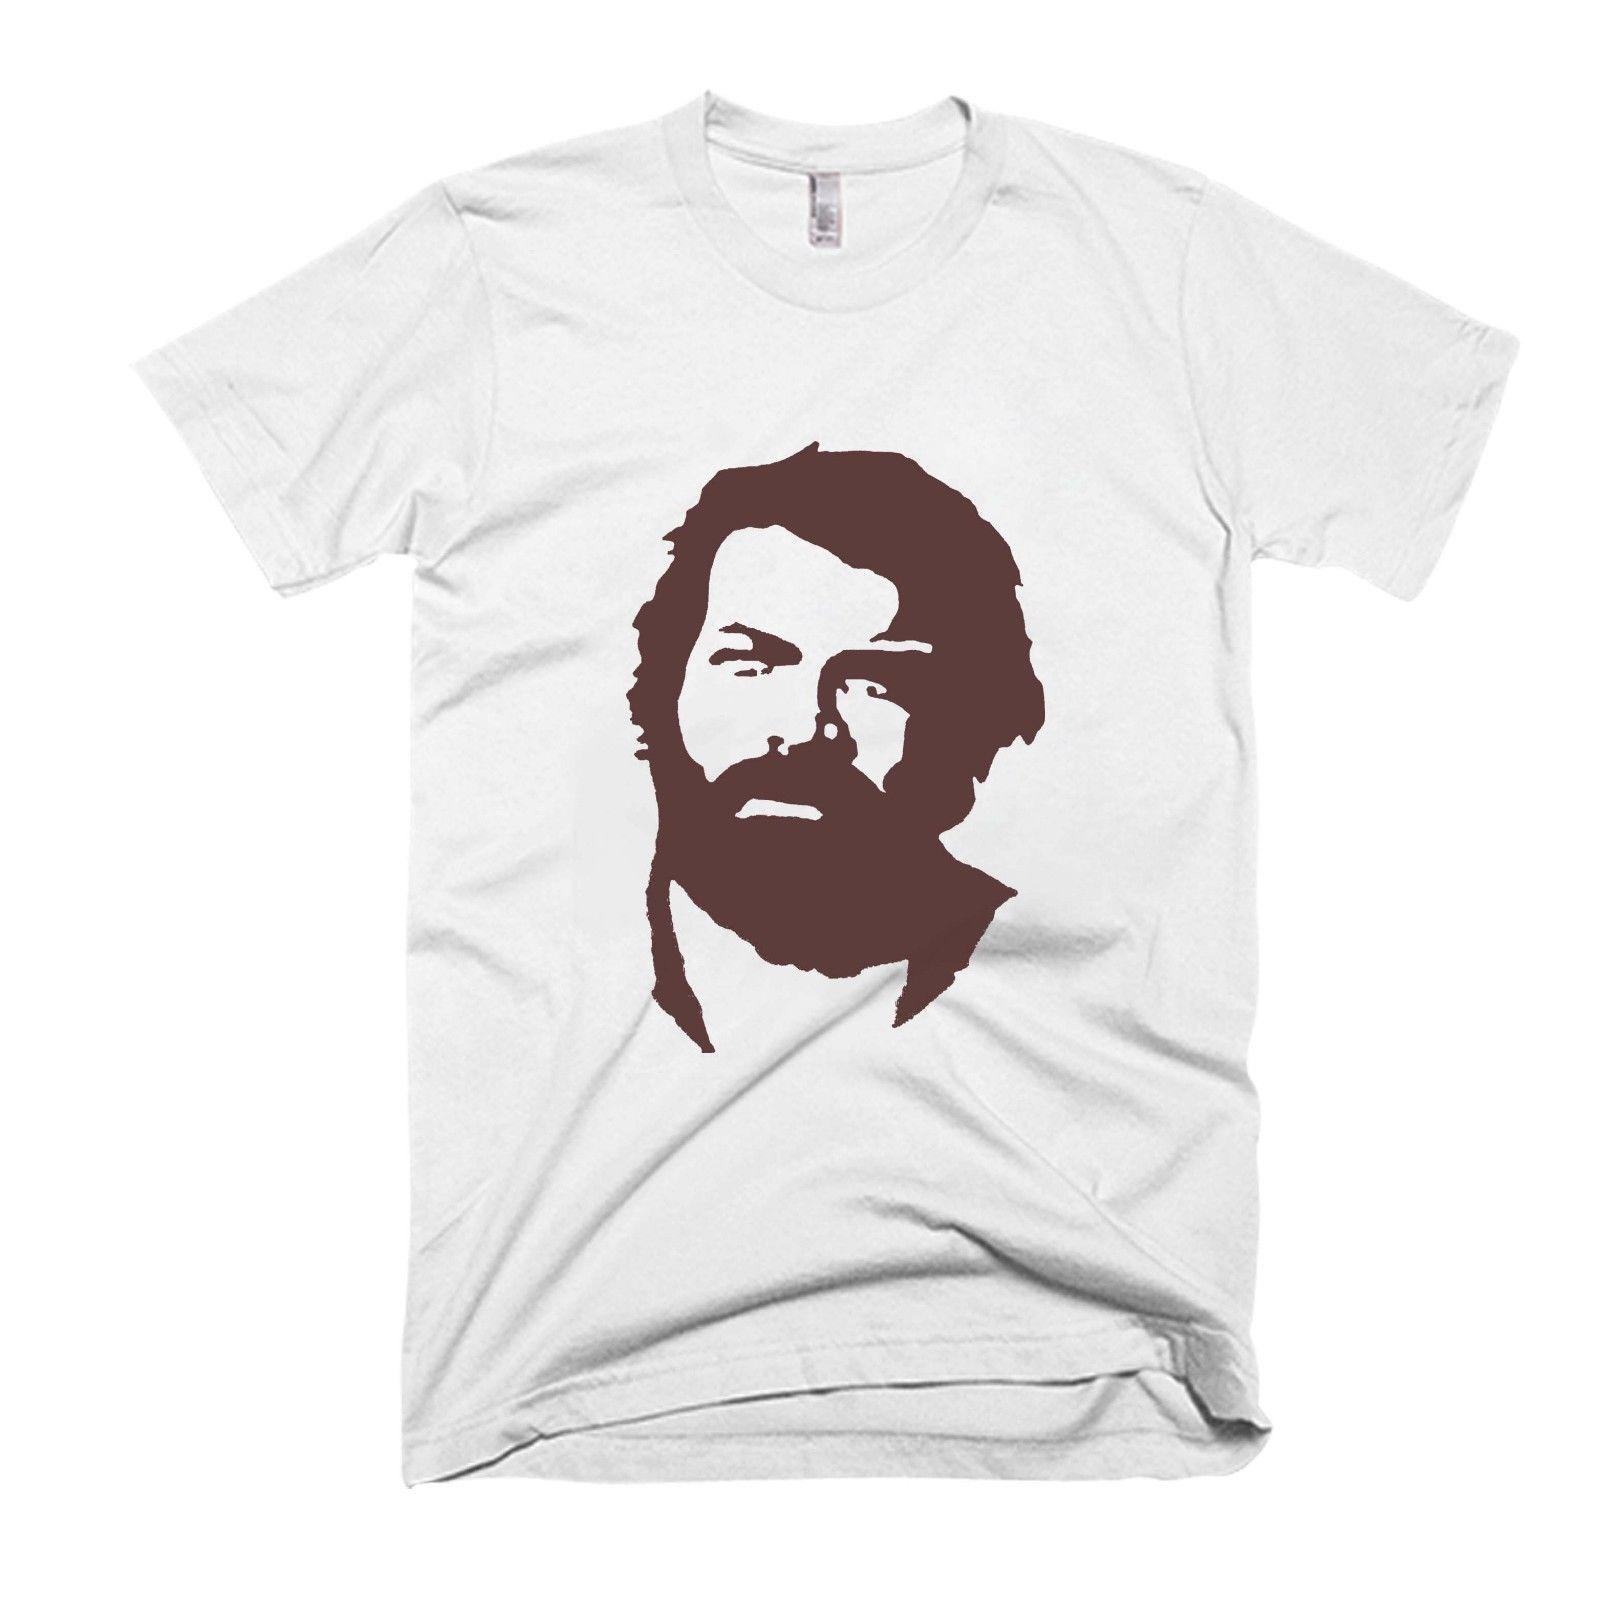 Bud Spencer Legend Heroes Men S   Women S T Shirt Wholesale Basic Models  Tee Summer Hot Sale O Neck Fashion Printed Online T Shirt Printing On T  Shirts From ... 43c35cc233